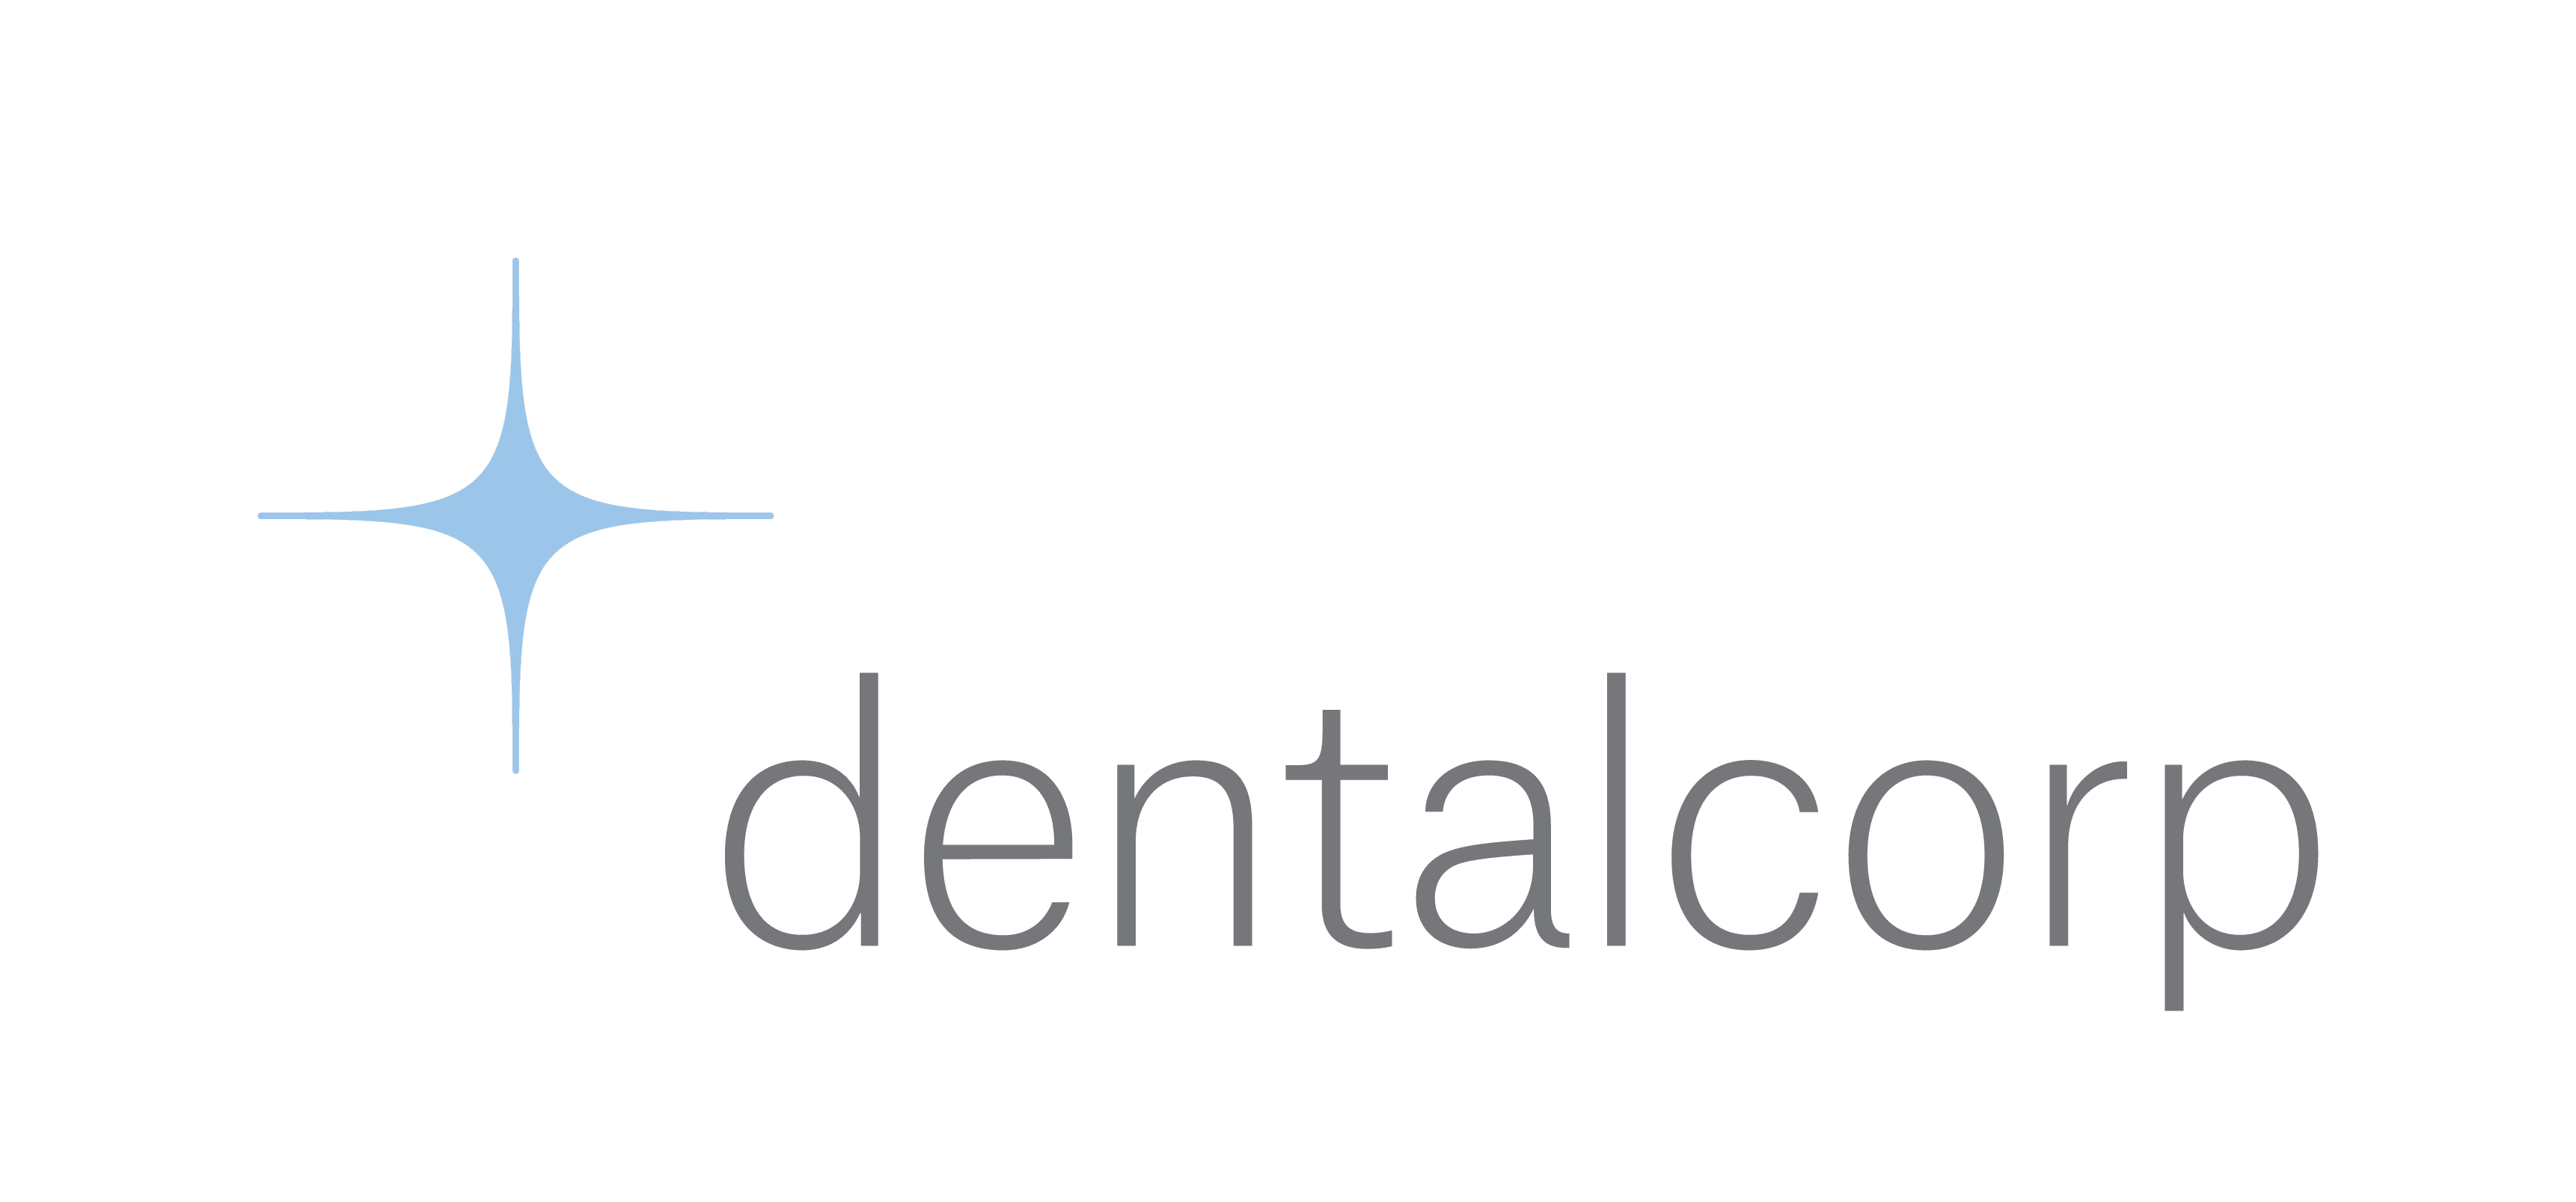 A letter from dentalcorp